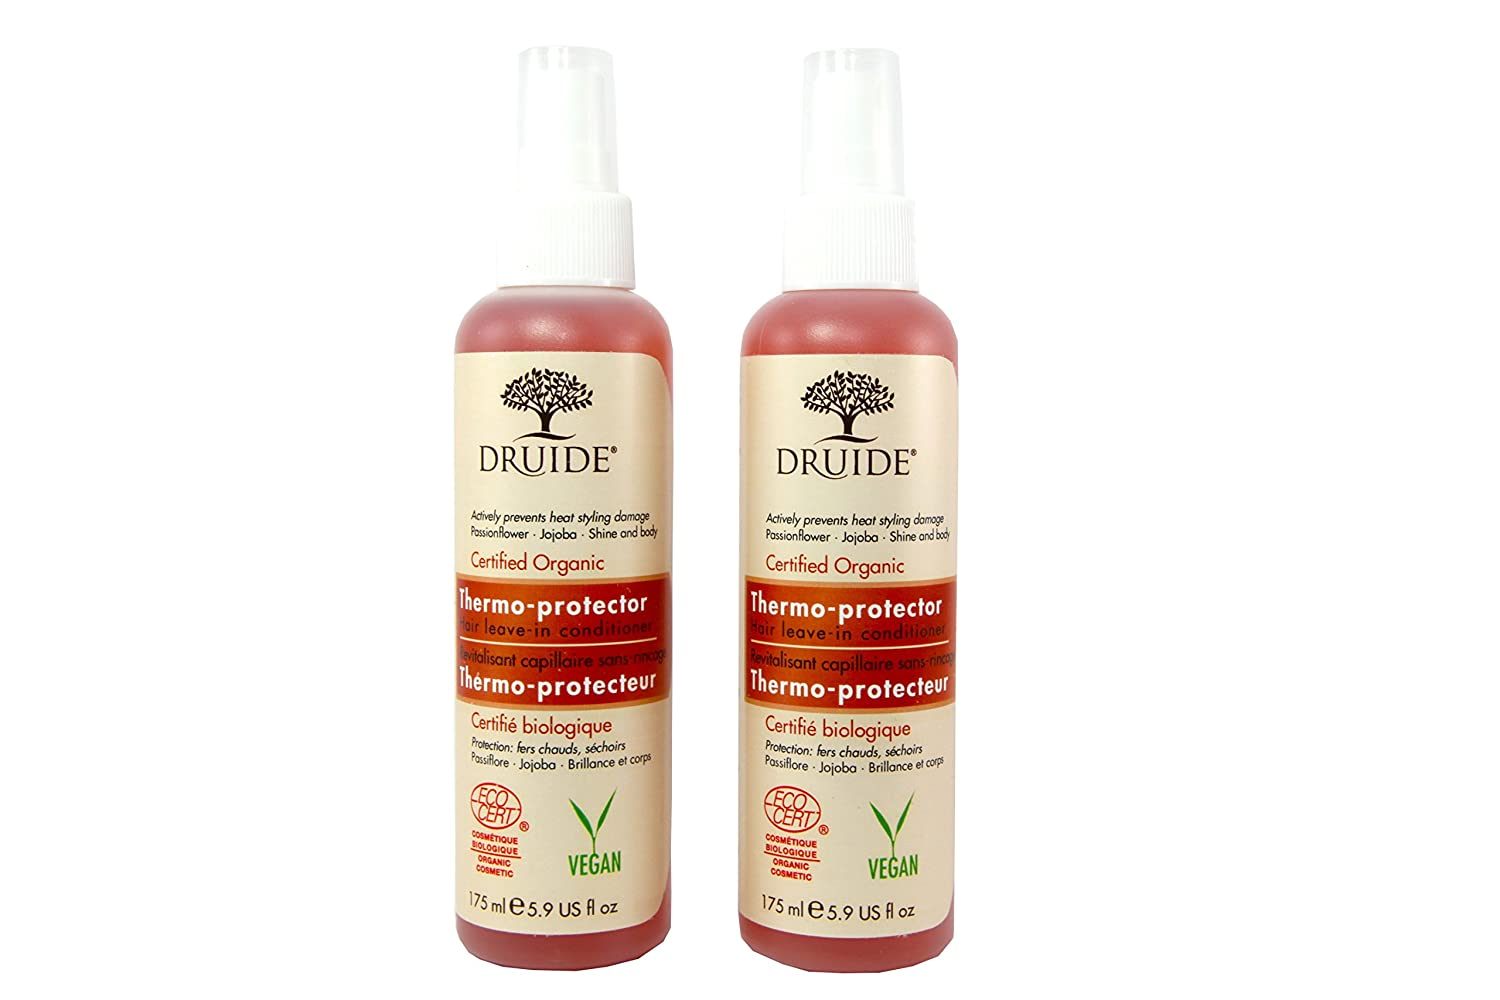 Druide – Lot de 2 – Spray thermoprotecteur Bio Haar – ohne für